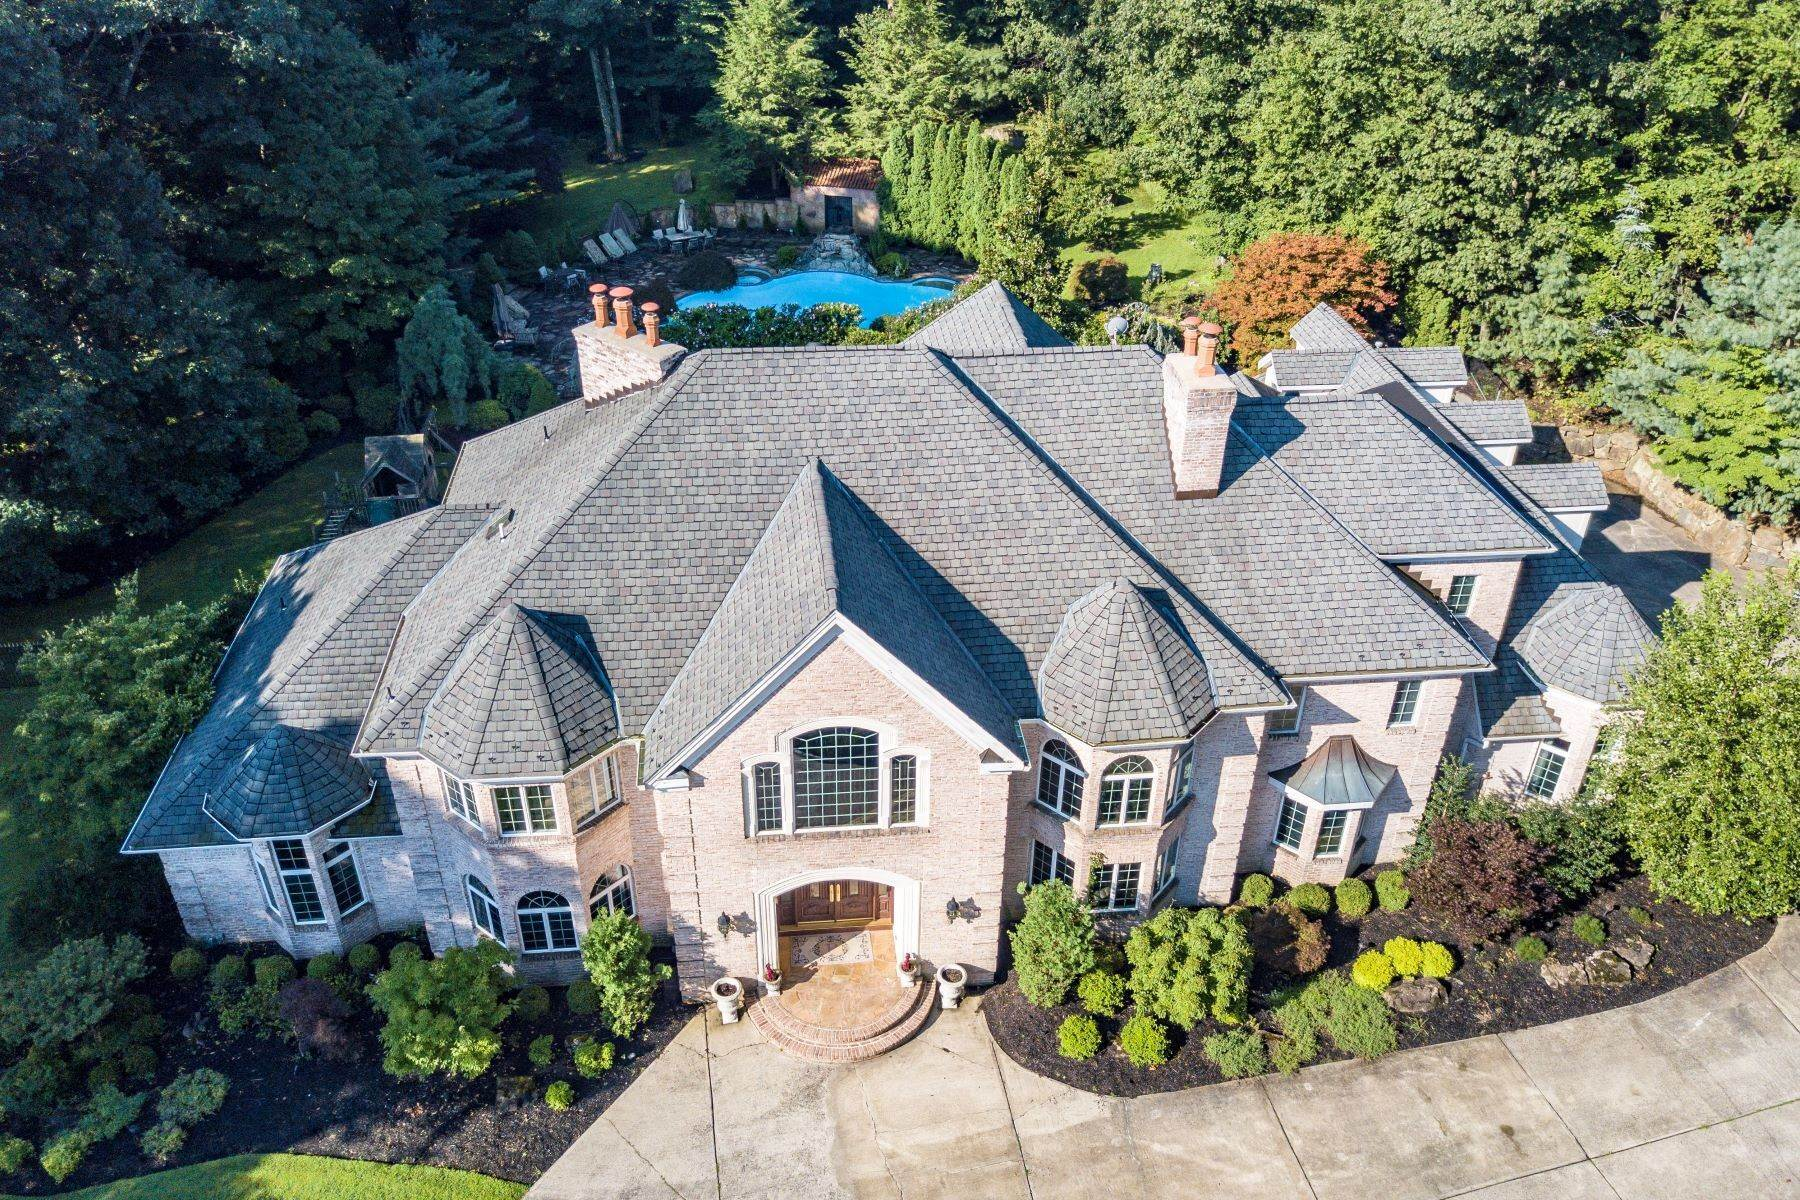 Single Family Homes for Sale at Exquisite Custom Home 5 Queens Court Mendham, New Jersey 07945 United States